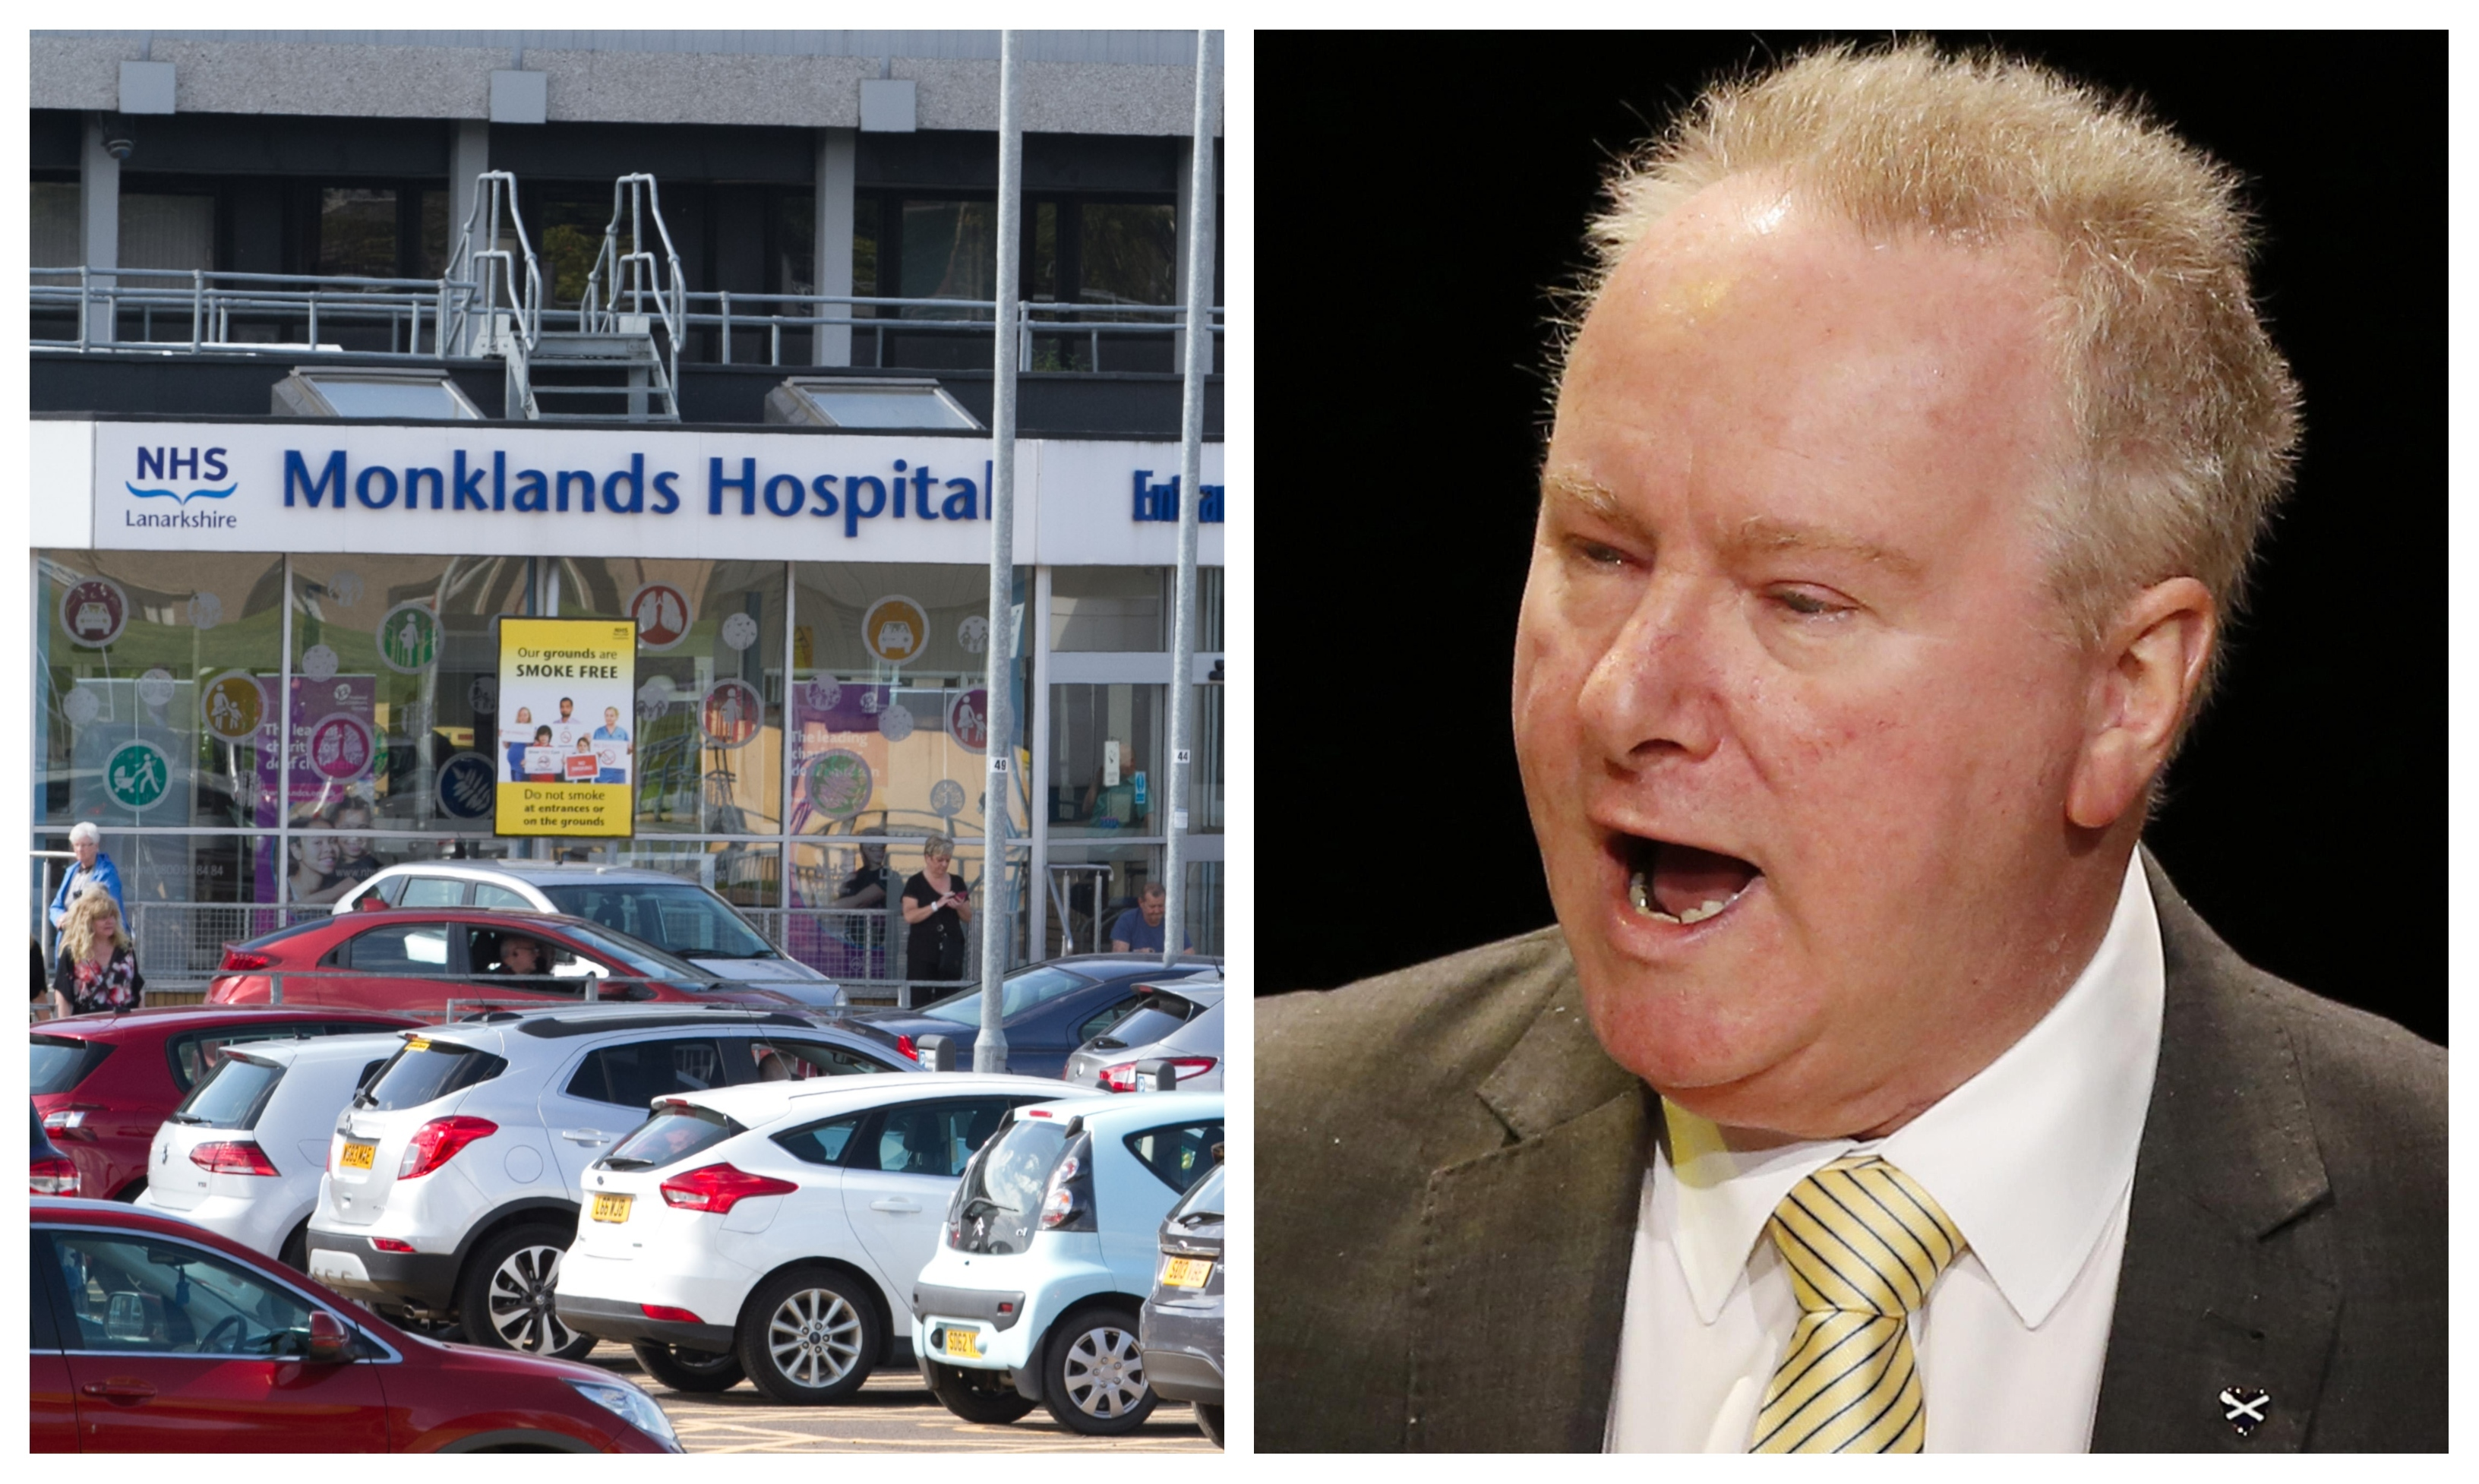 Alex Neil has accused NHS Lanarkshire of rigging consultation into possible sites for a new Monklands hospital